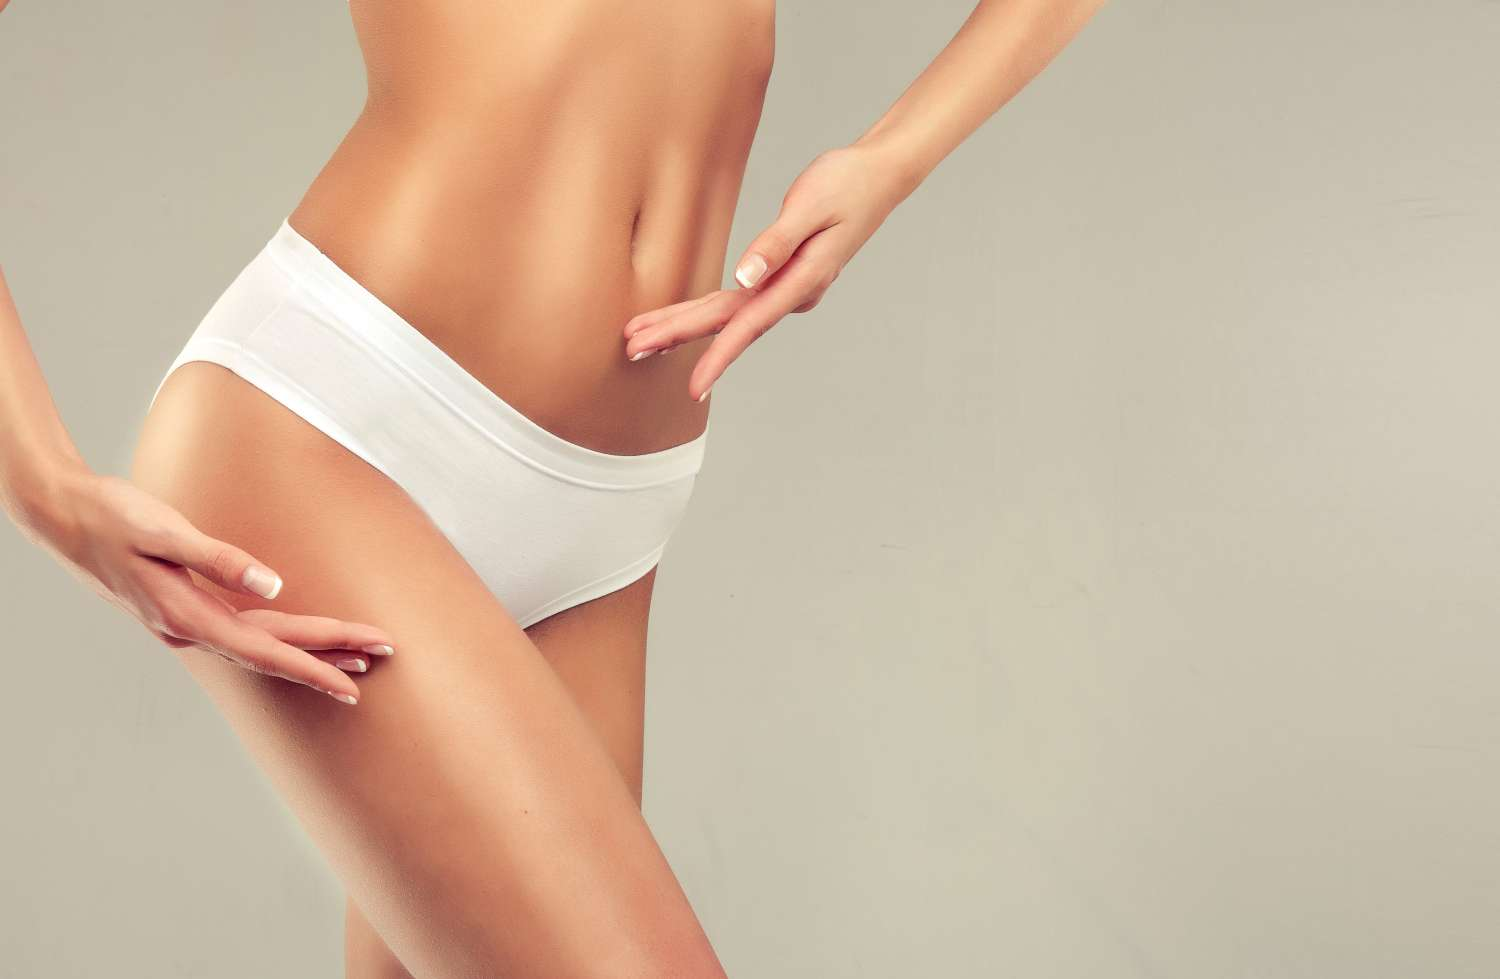 Prevent blood clots after buttock augmentation surgery